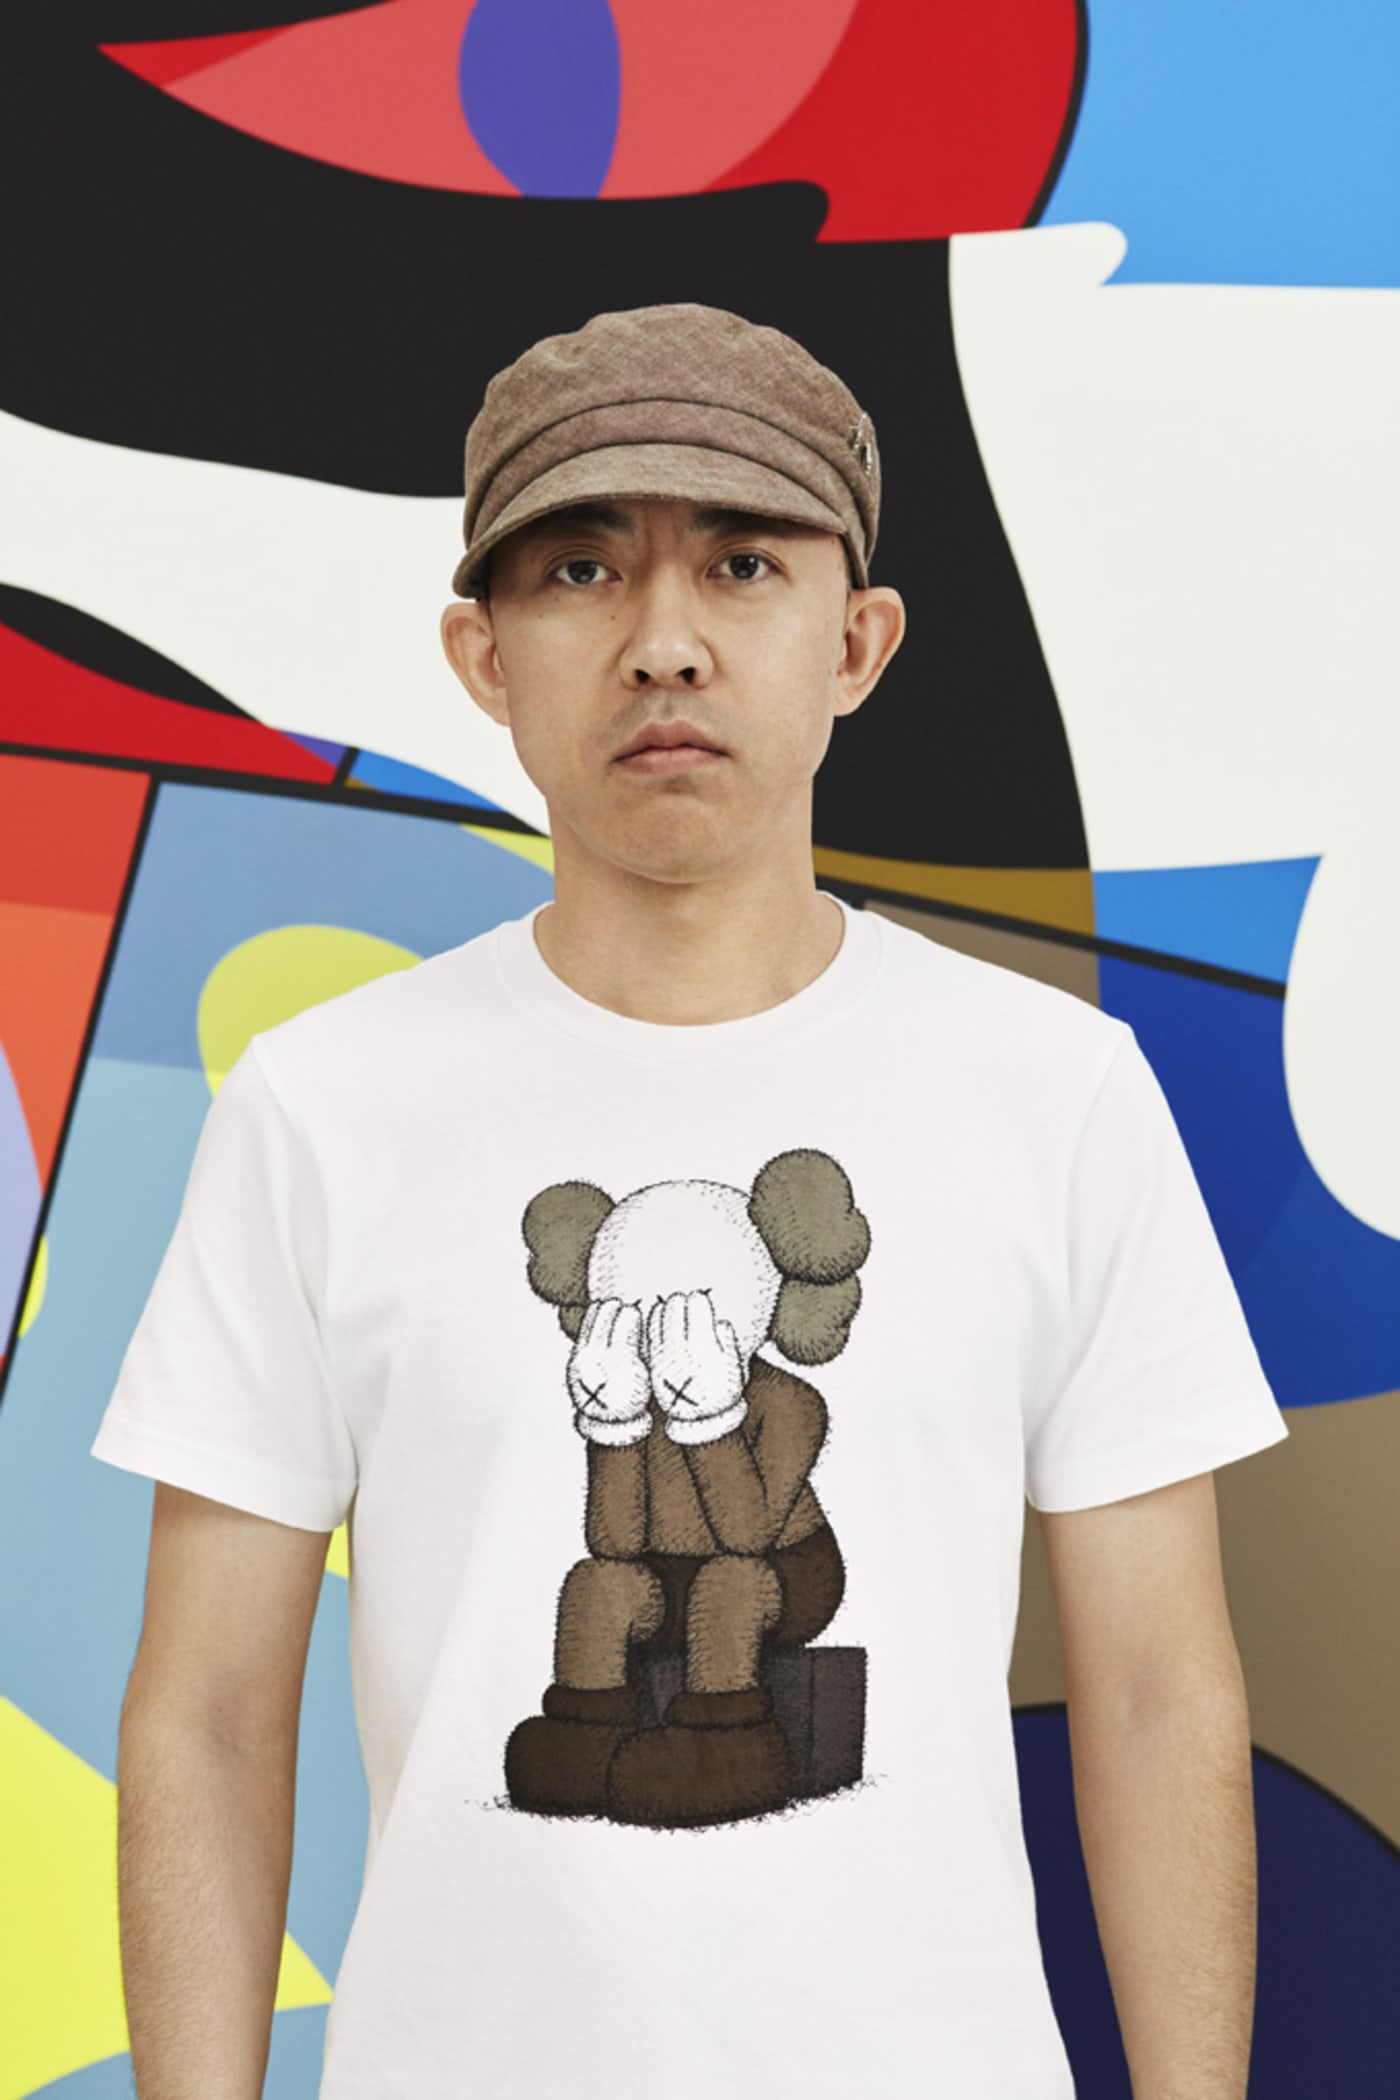 nigo on uniqlo ut x kaws collaboration